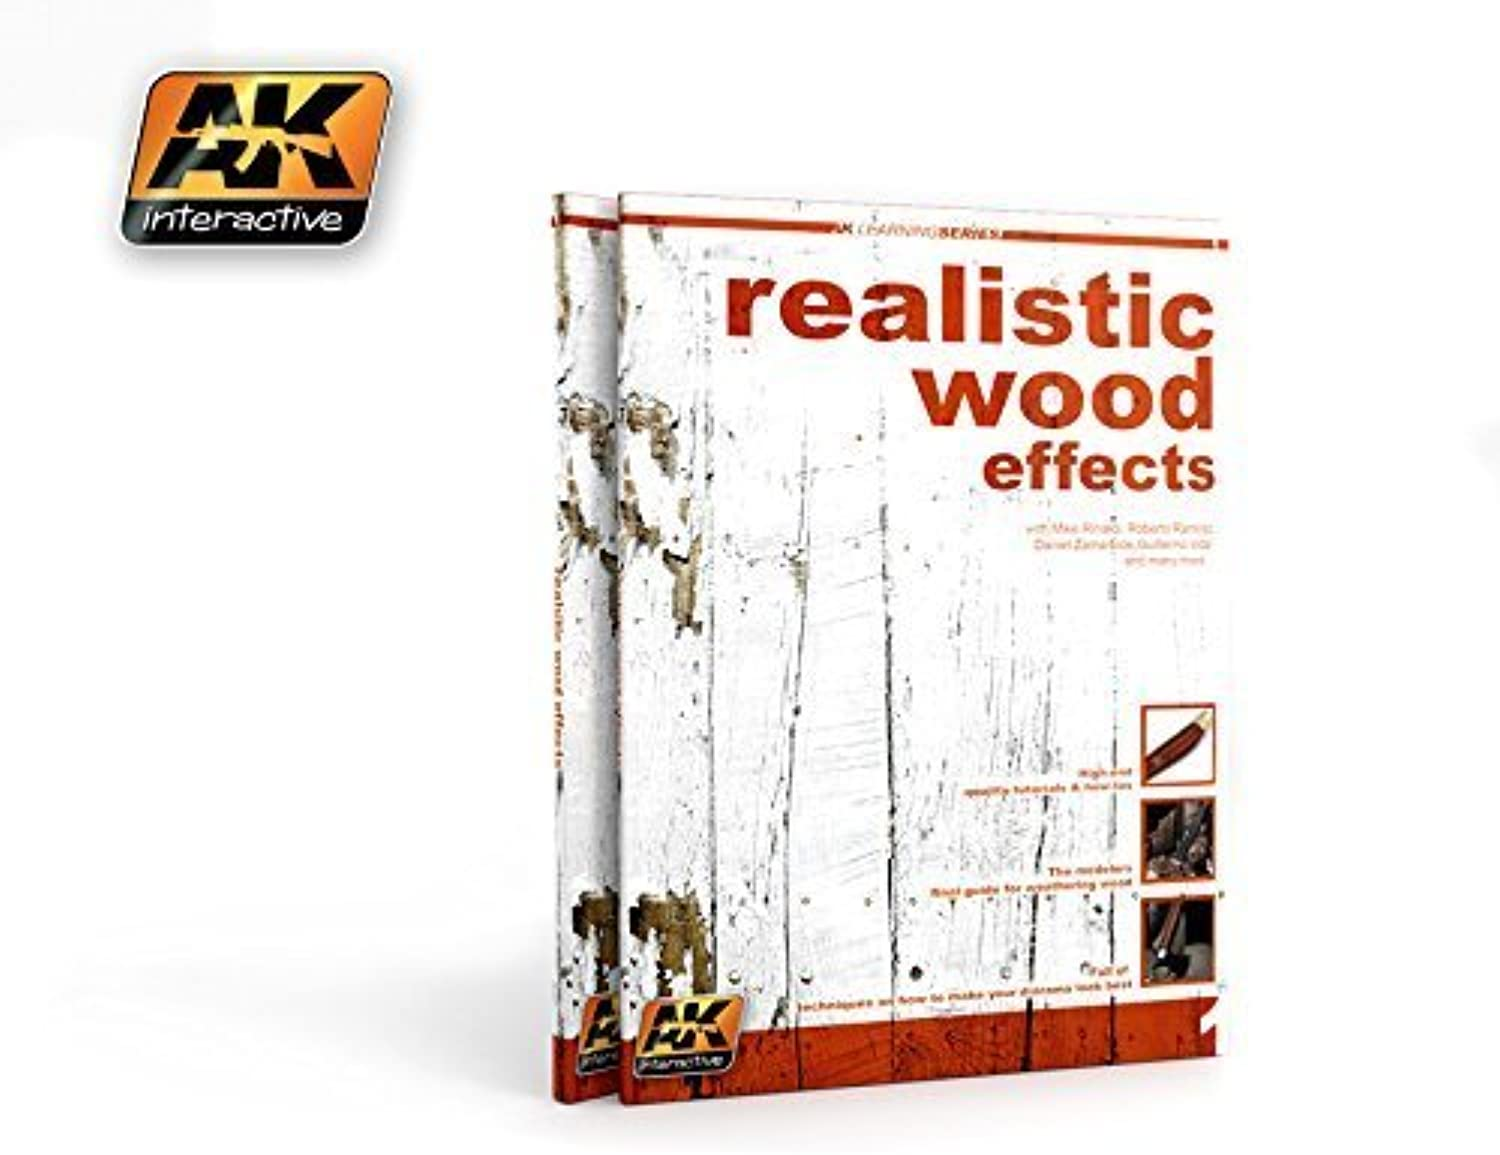 AK Interactive Realistic Wood Effects